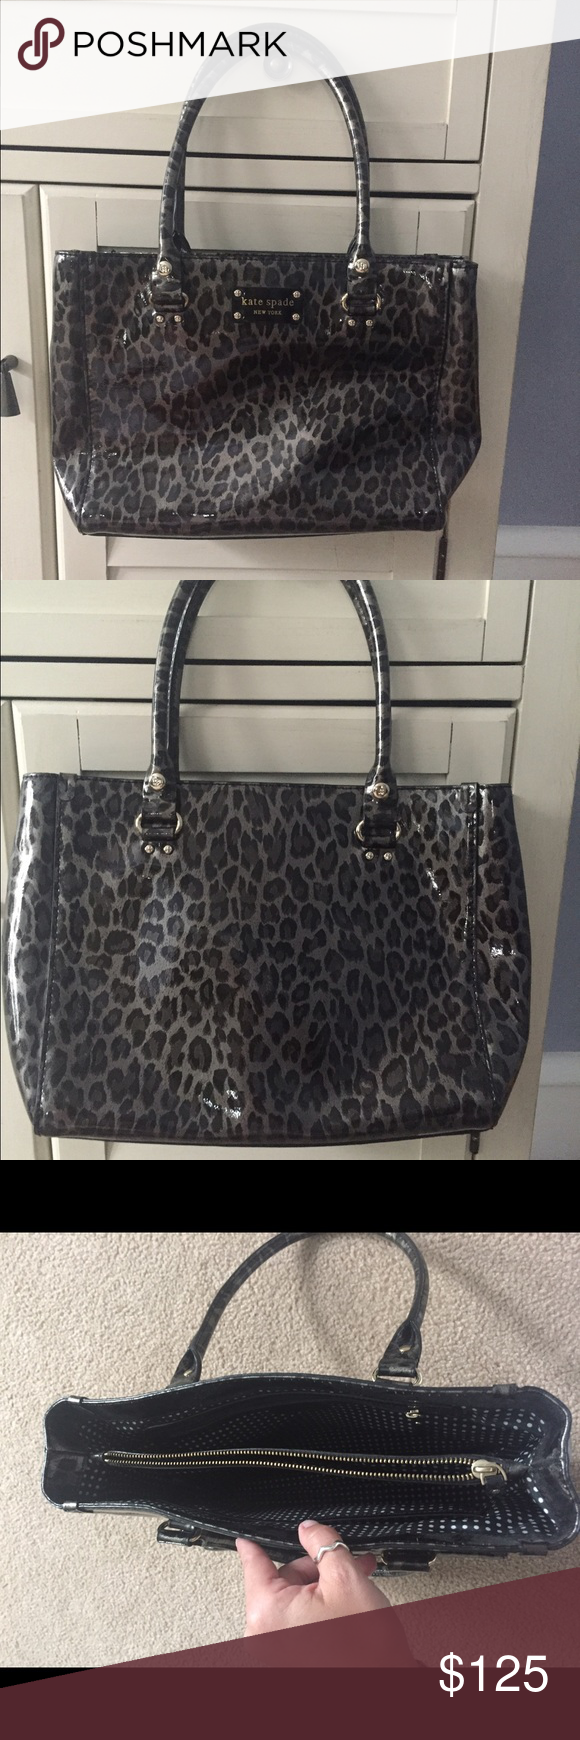 "Kate Spade Quinn Wellesley Animal Handbag Gently used. No stains/wear. Interior center zip compartment. Zip pocket on the inside and 2 small slip pockets. 7"" handle drop. Please no trades kate spade Bags"